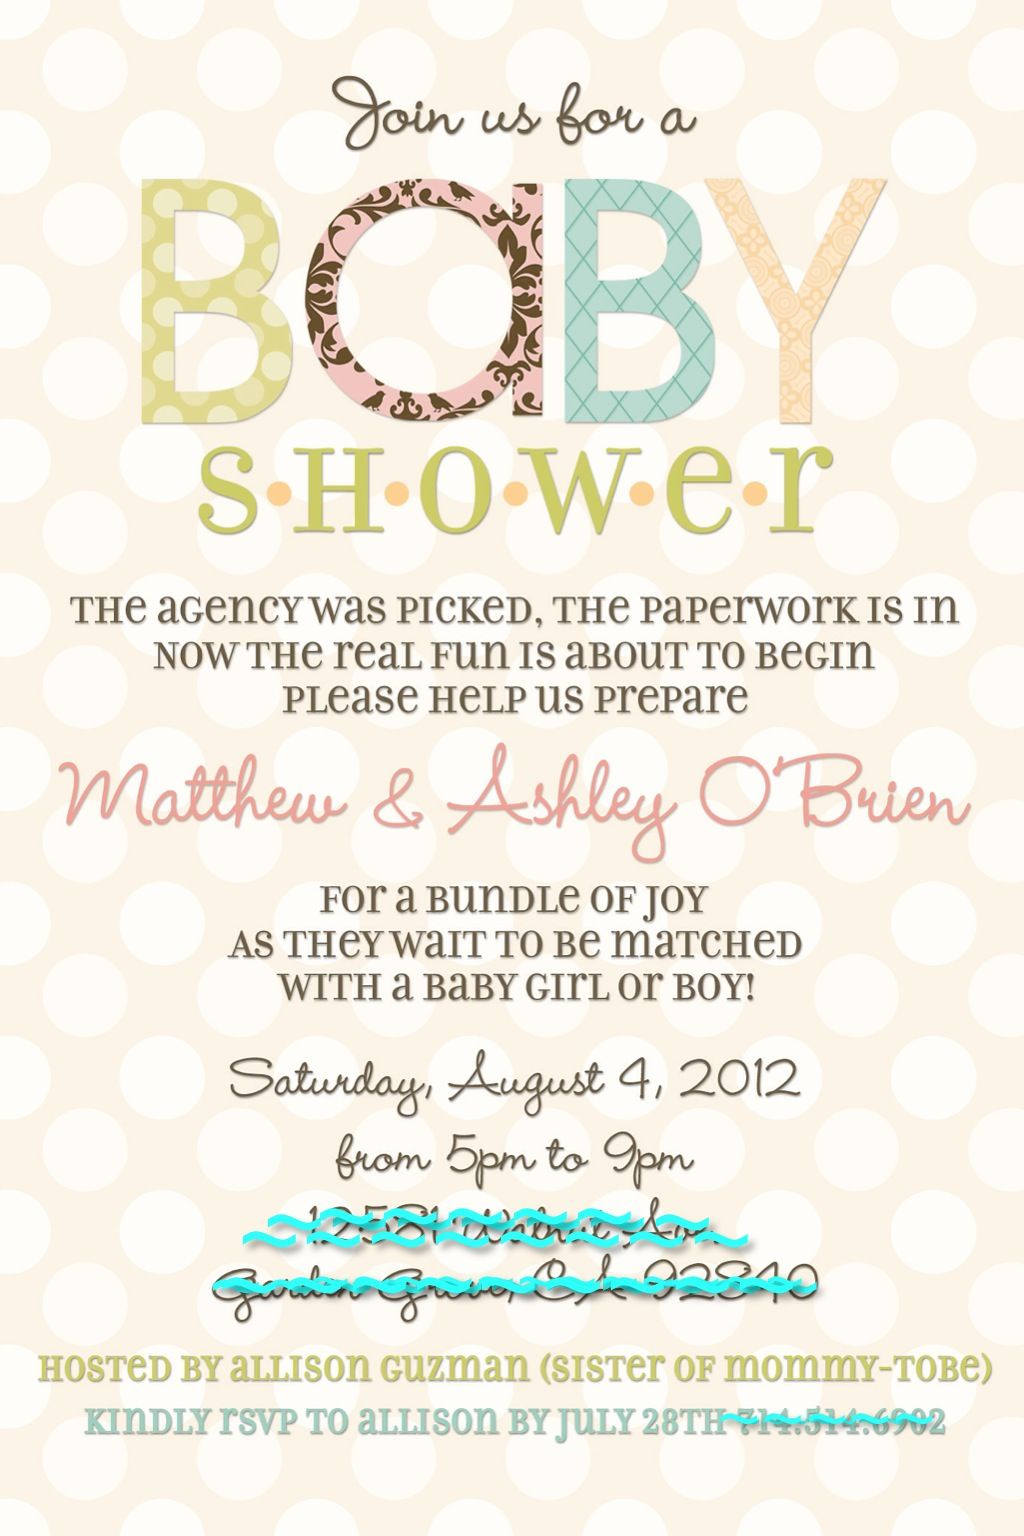 Hosting an Adoption Baby Shower